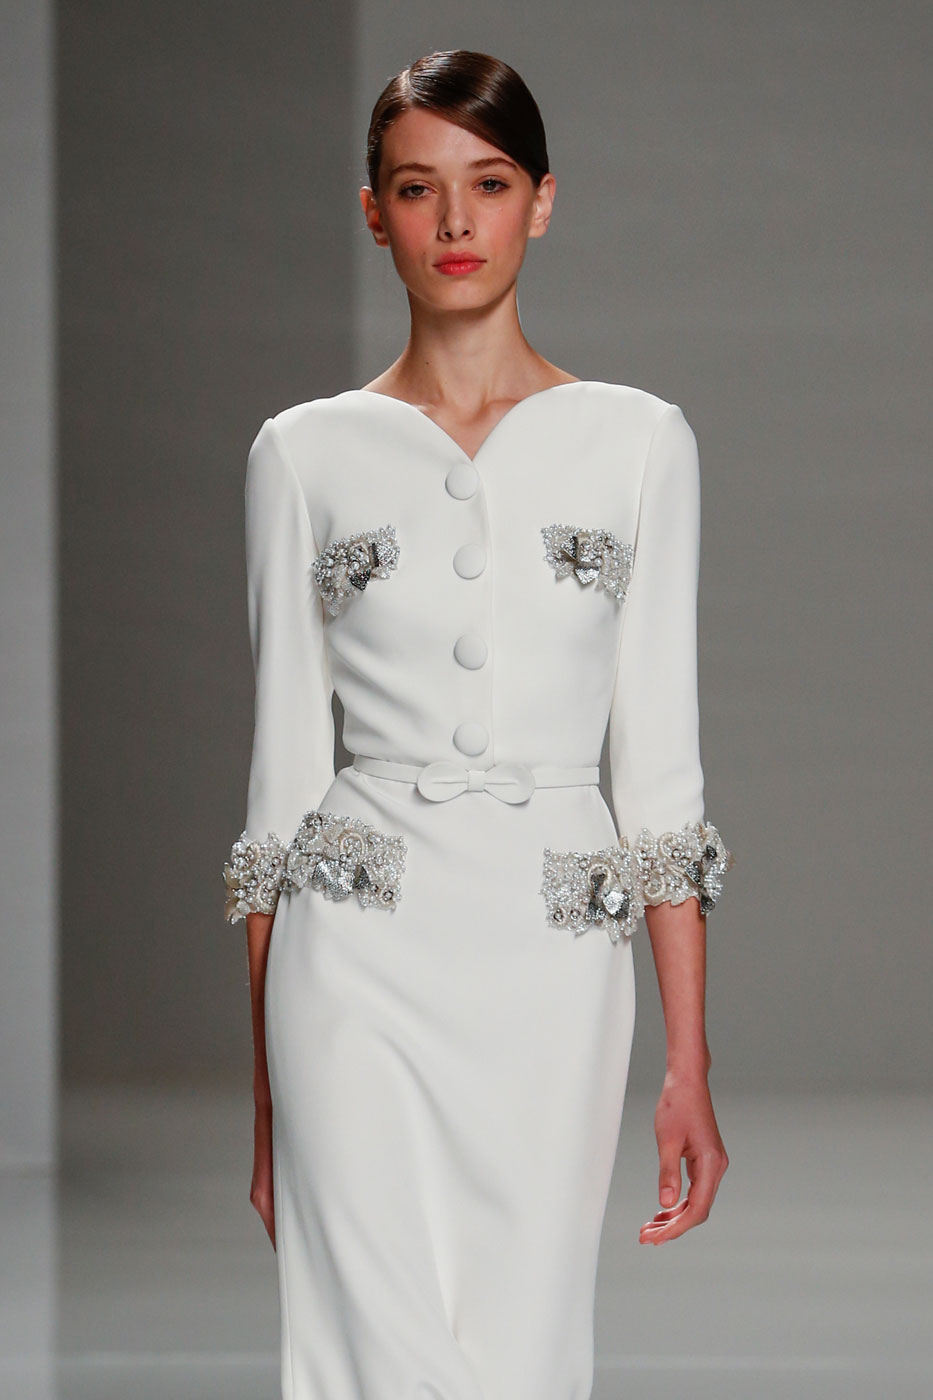 Georges-Hobeika-fashion-runway-show-haute-couture-paris-spring-2015-the-impression-36